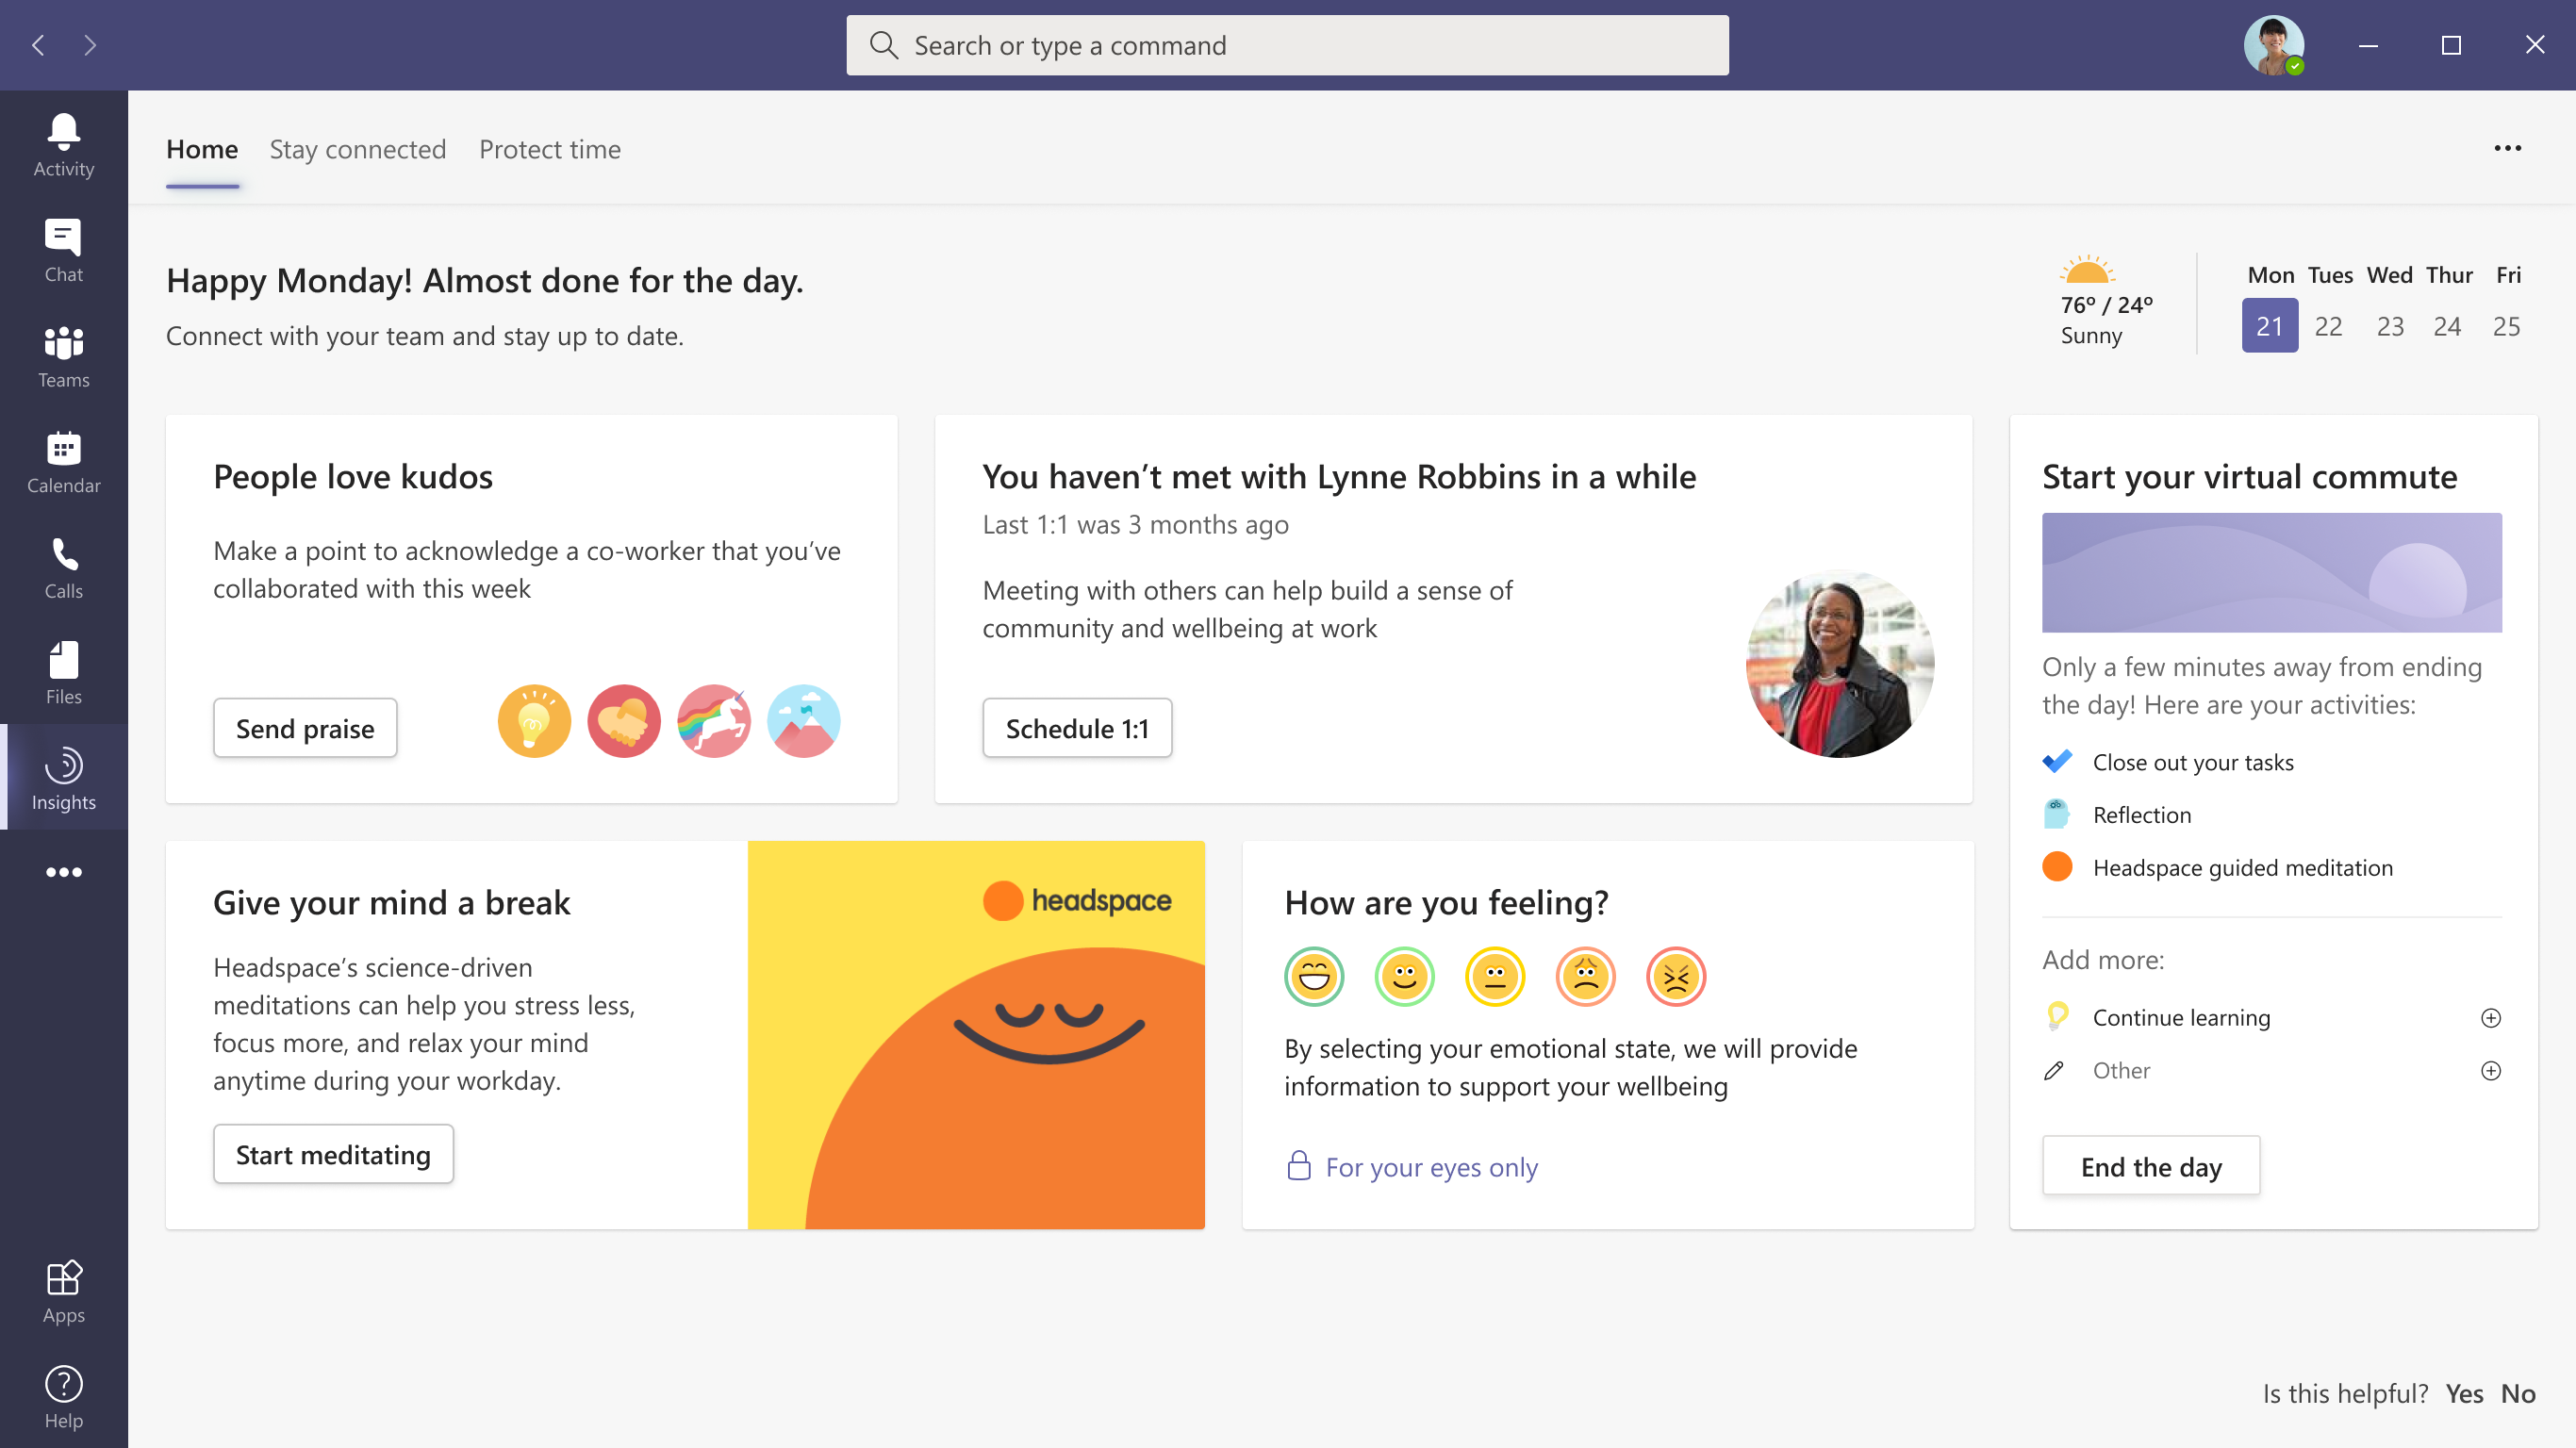 microsoft 365 virtual commute feature in microsoft teams